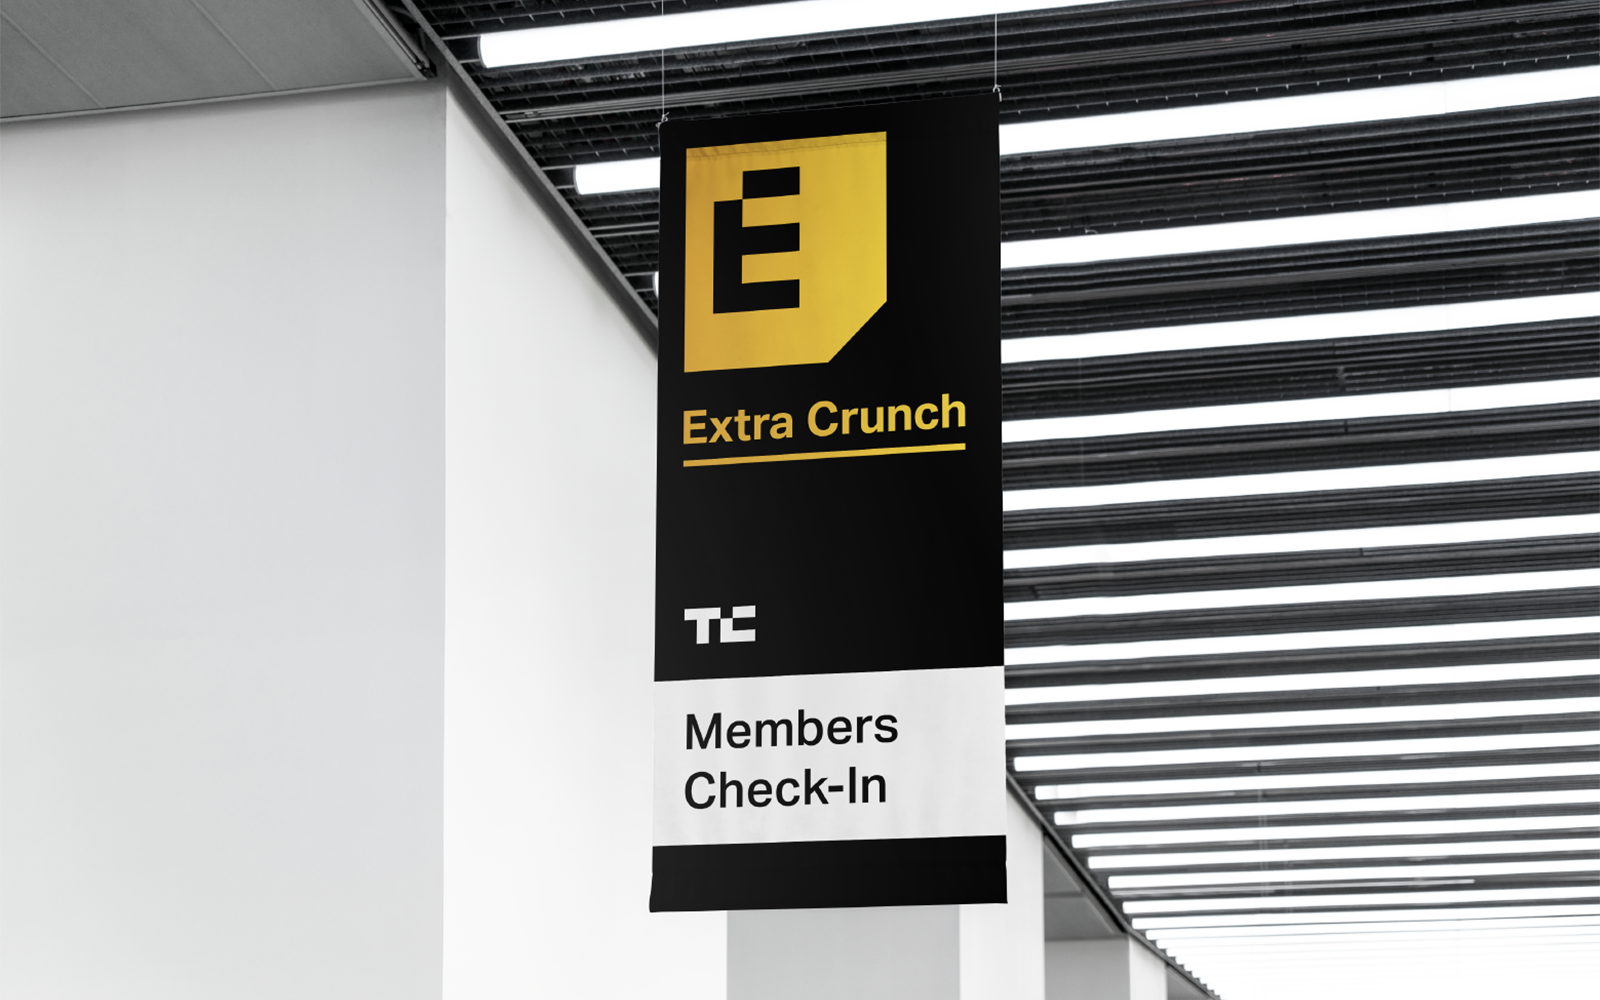 ExtraCrunch visual identity by Mark Forscher